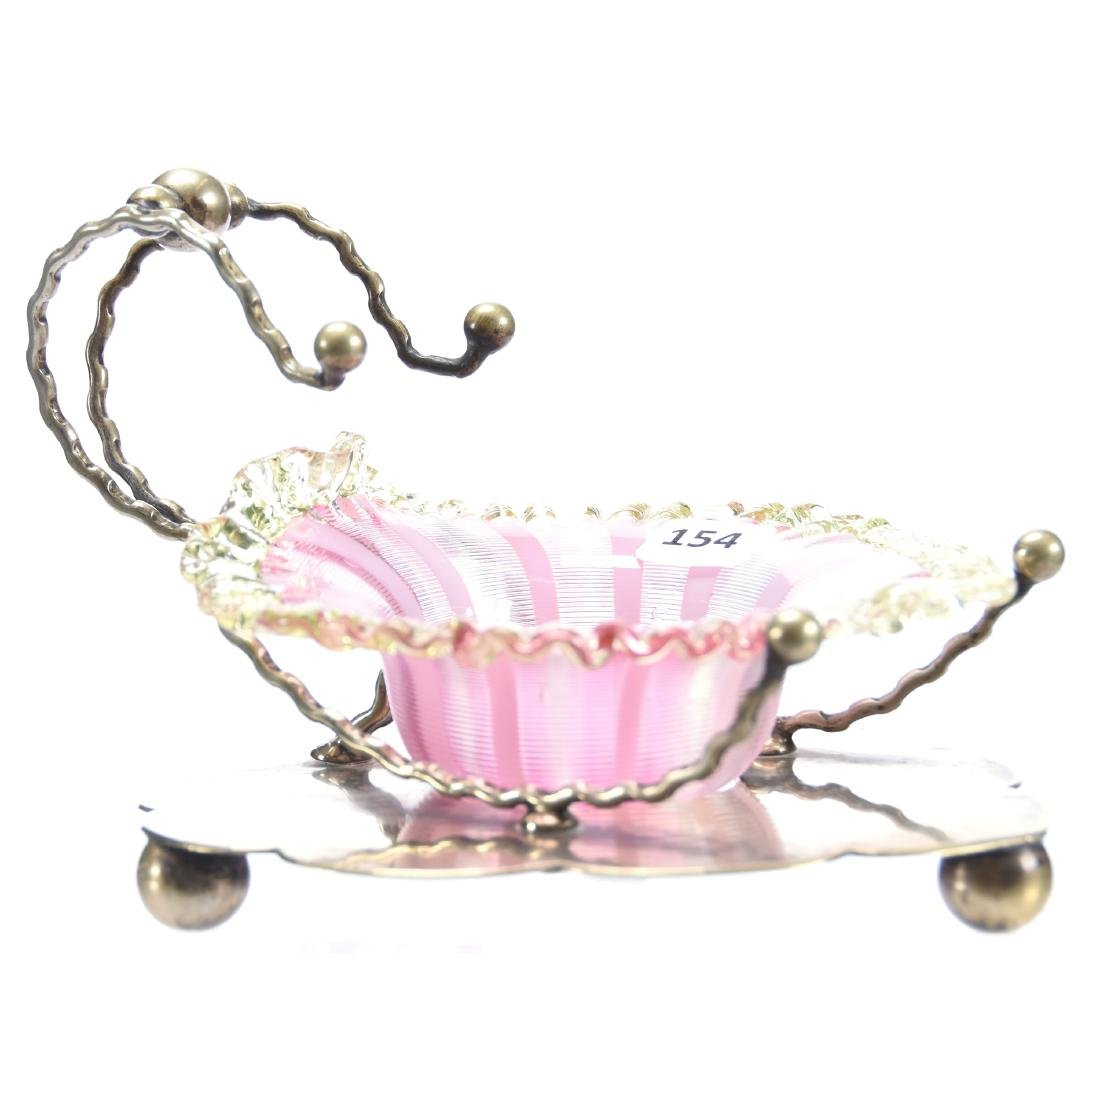 Sweetmeat Dish, Silverplate Frame